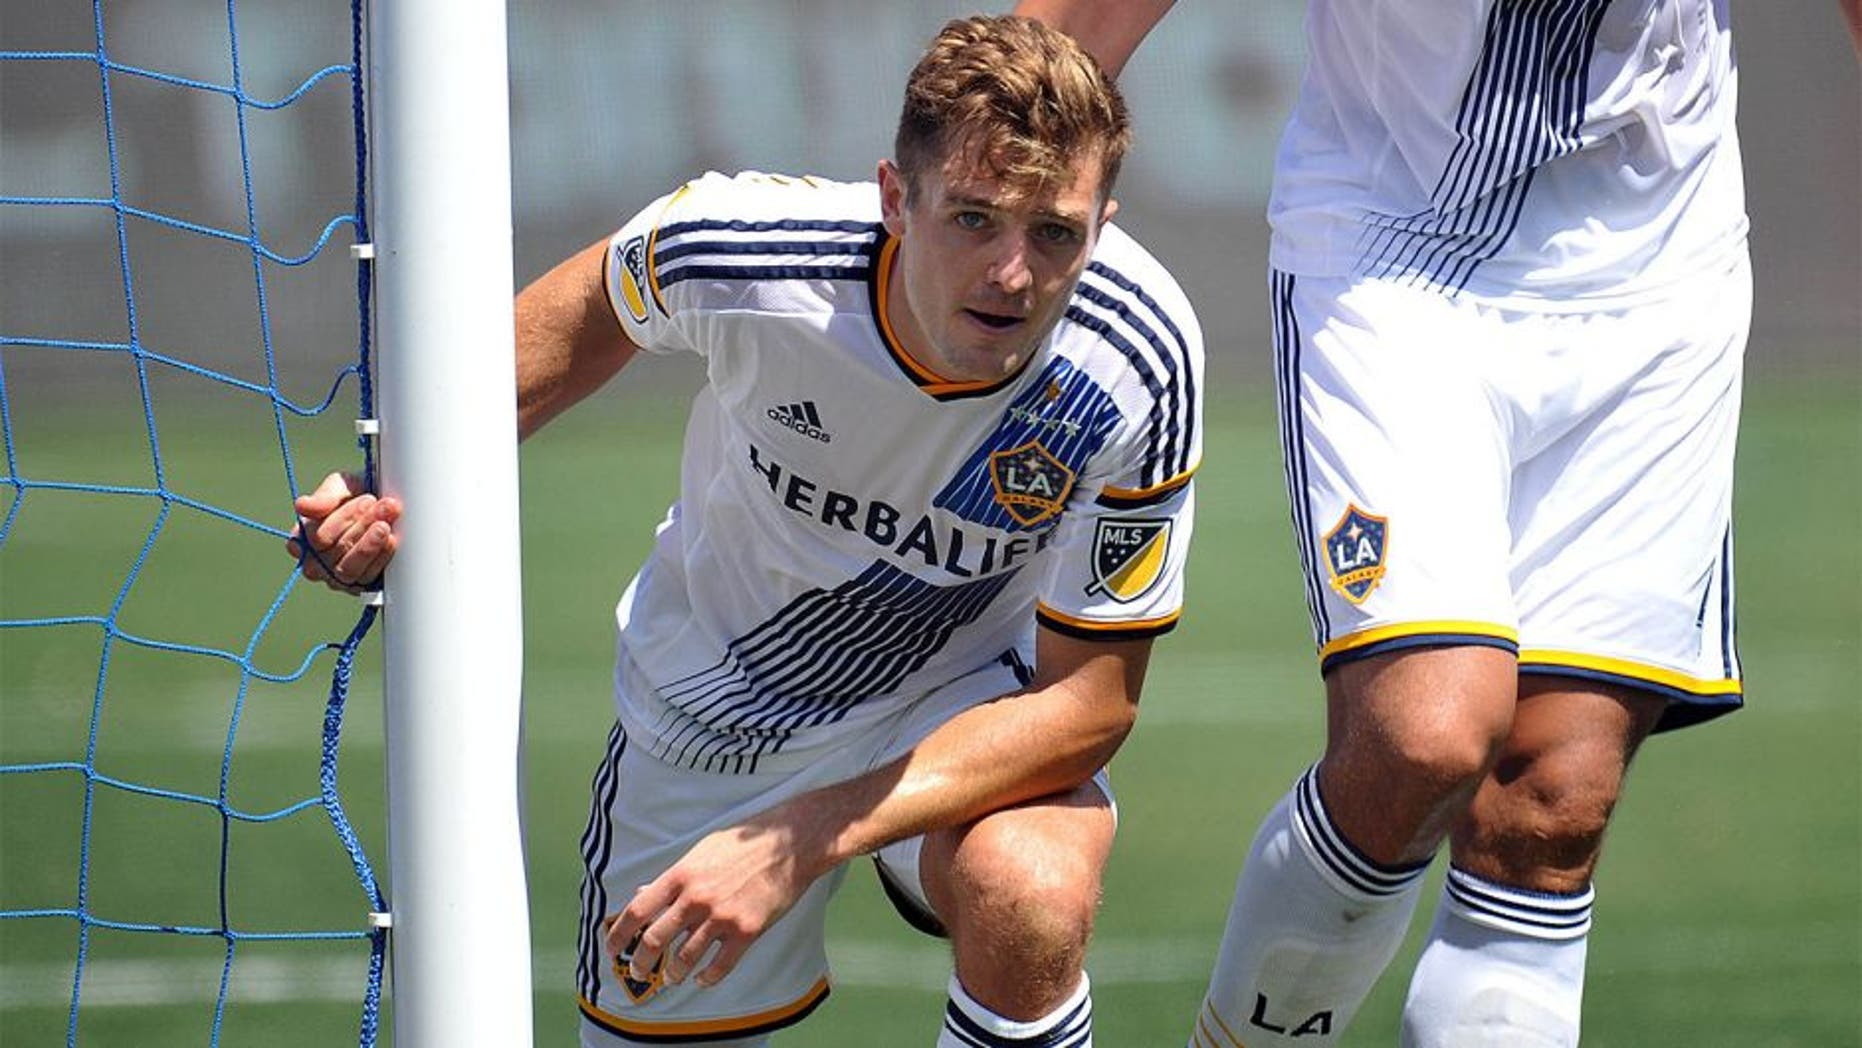 August 9, 2015; Carson, CA, USA; Los Angeles Galaxy midfielder Robbie Rogers (14) reacts after making a defensive play against Seattle Sounders during the second half at StubHub Center. Mandatory Credit: Gary A. Vasquez-USA TODAY Sports